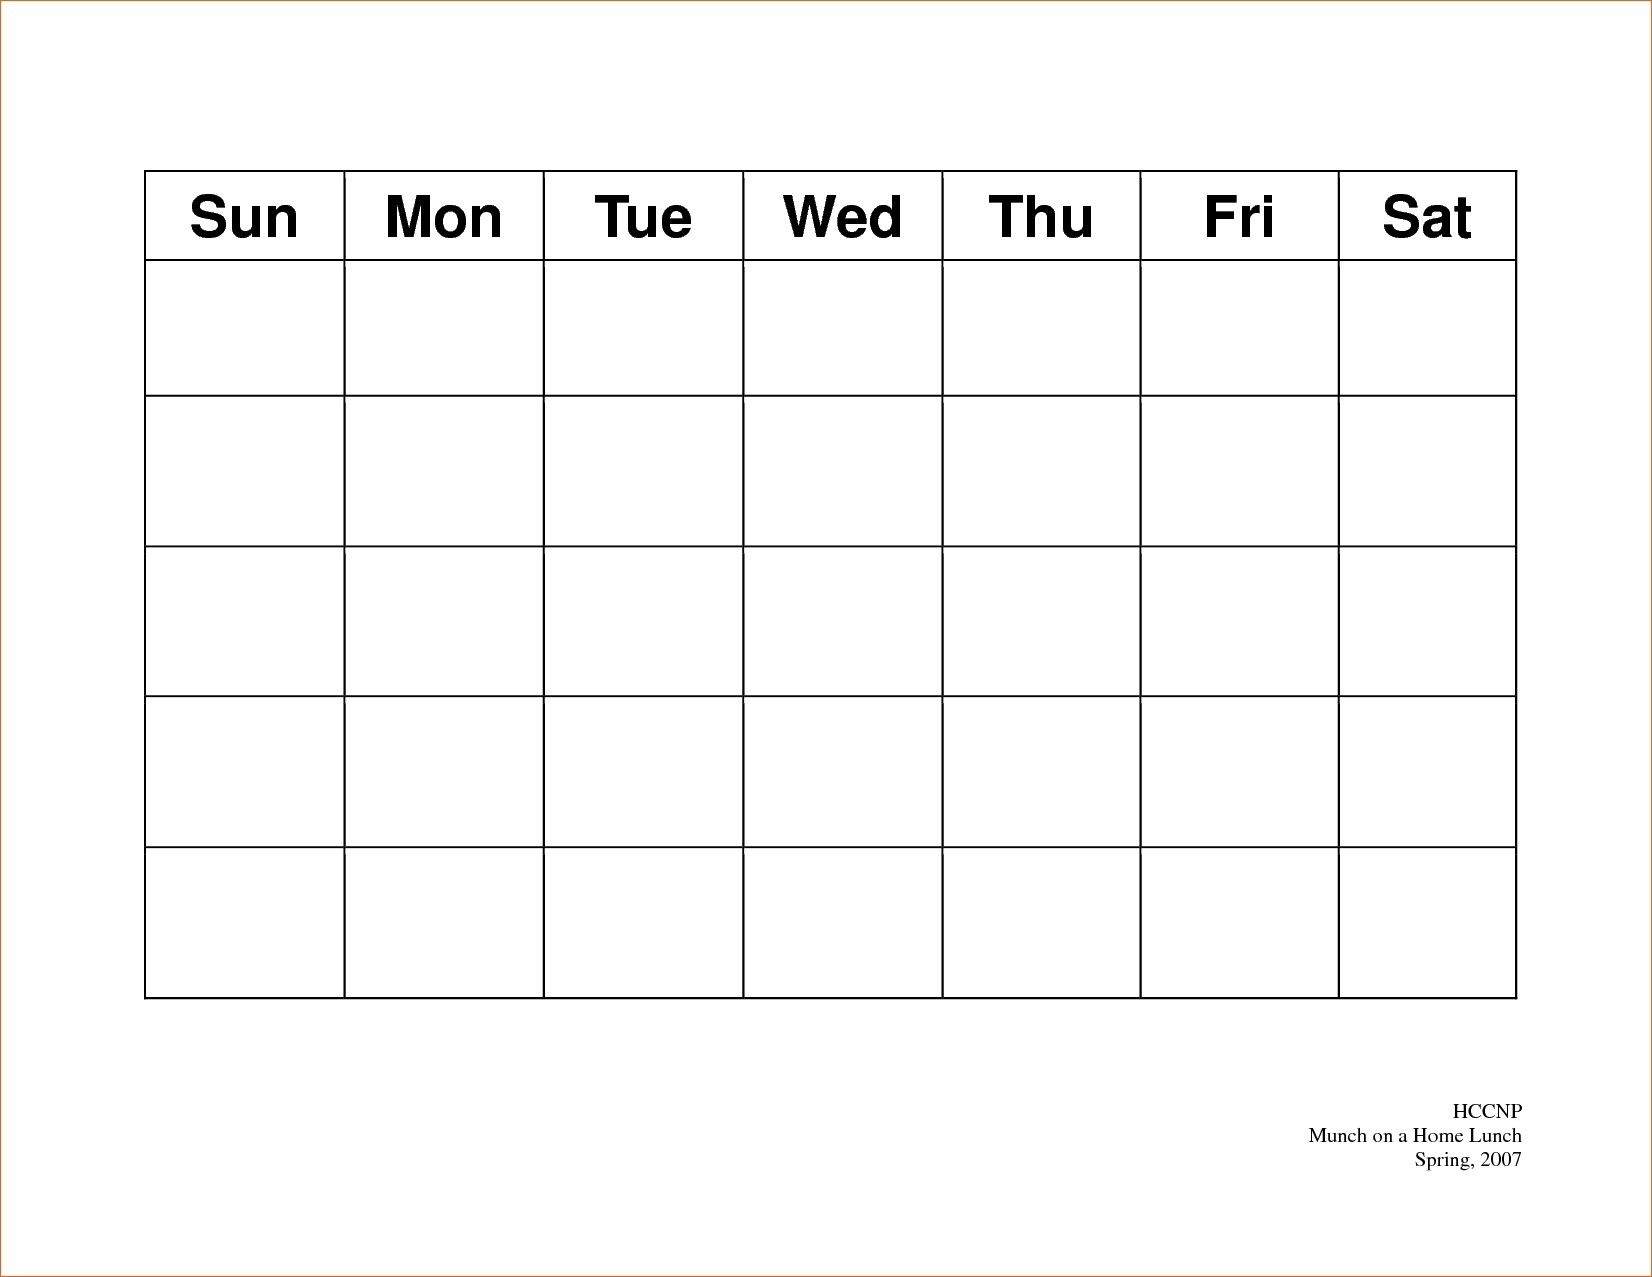 Calendar 5 Day Weekly Calendar Template On 5 Week Calendar with Day By Day And Weekly Printable Calendars